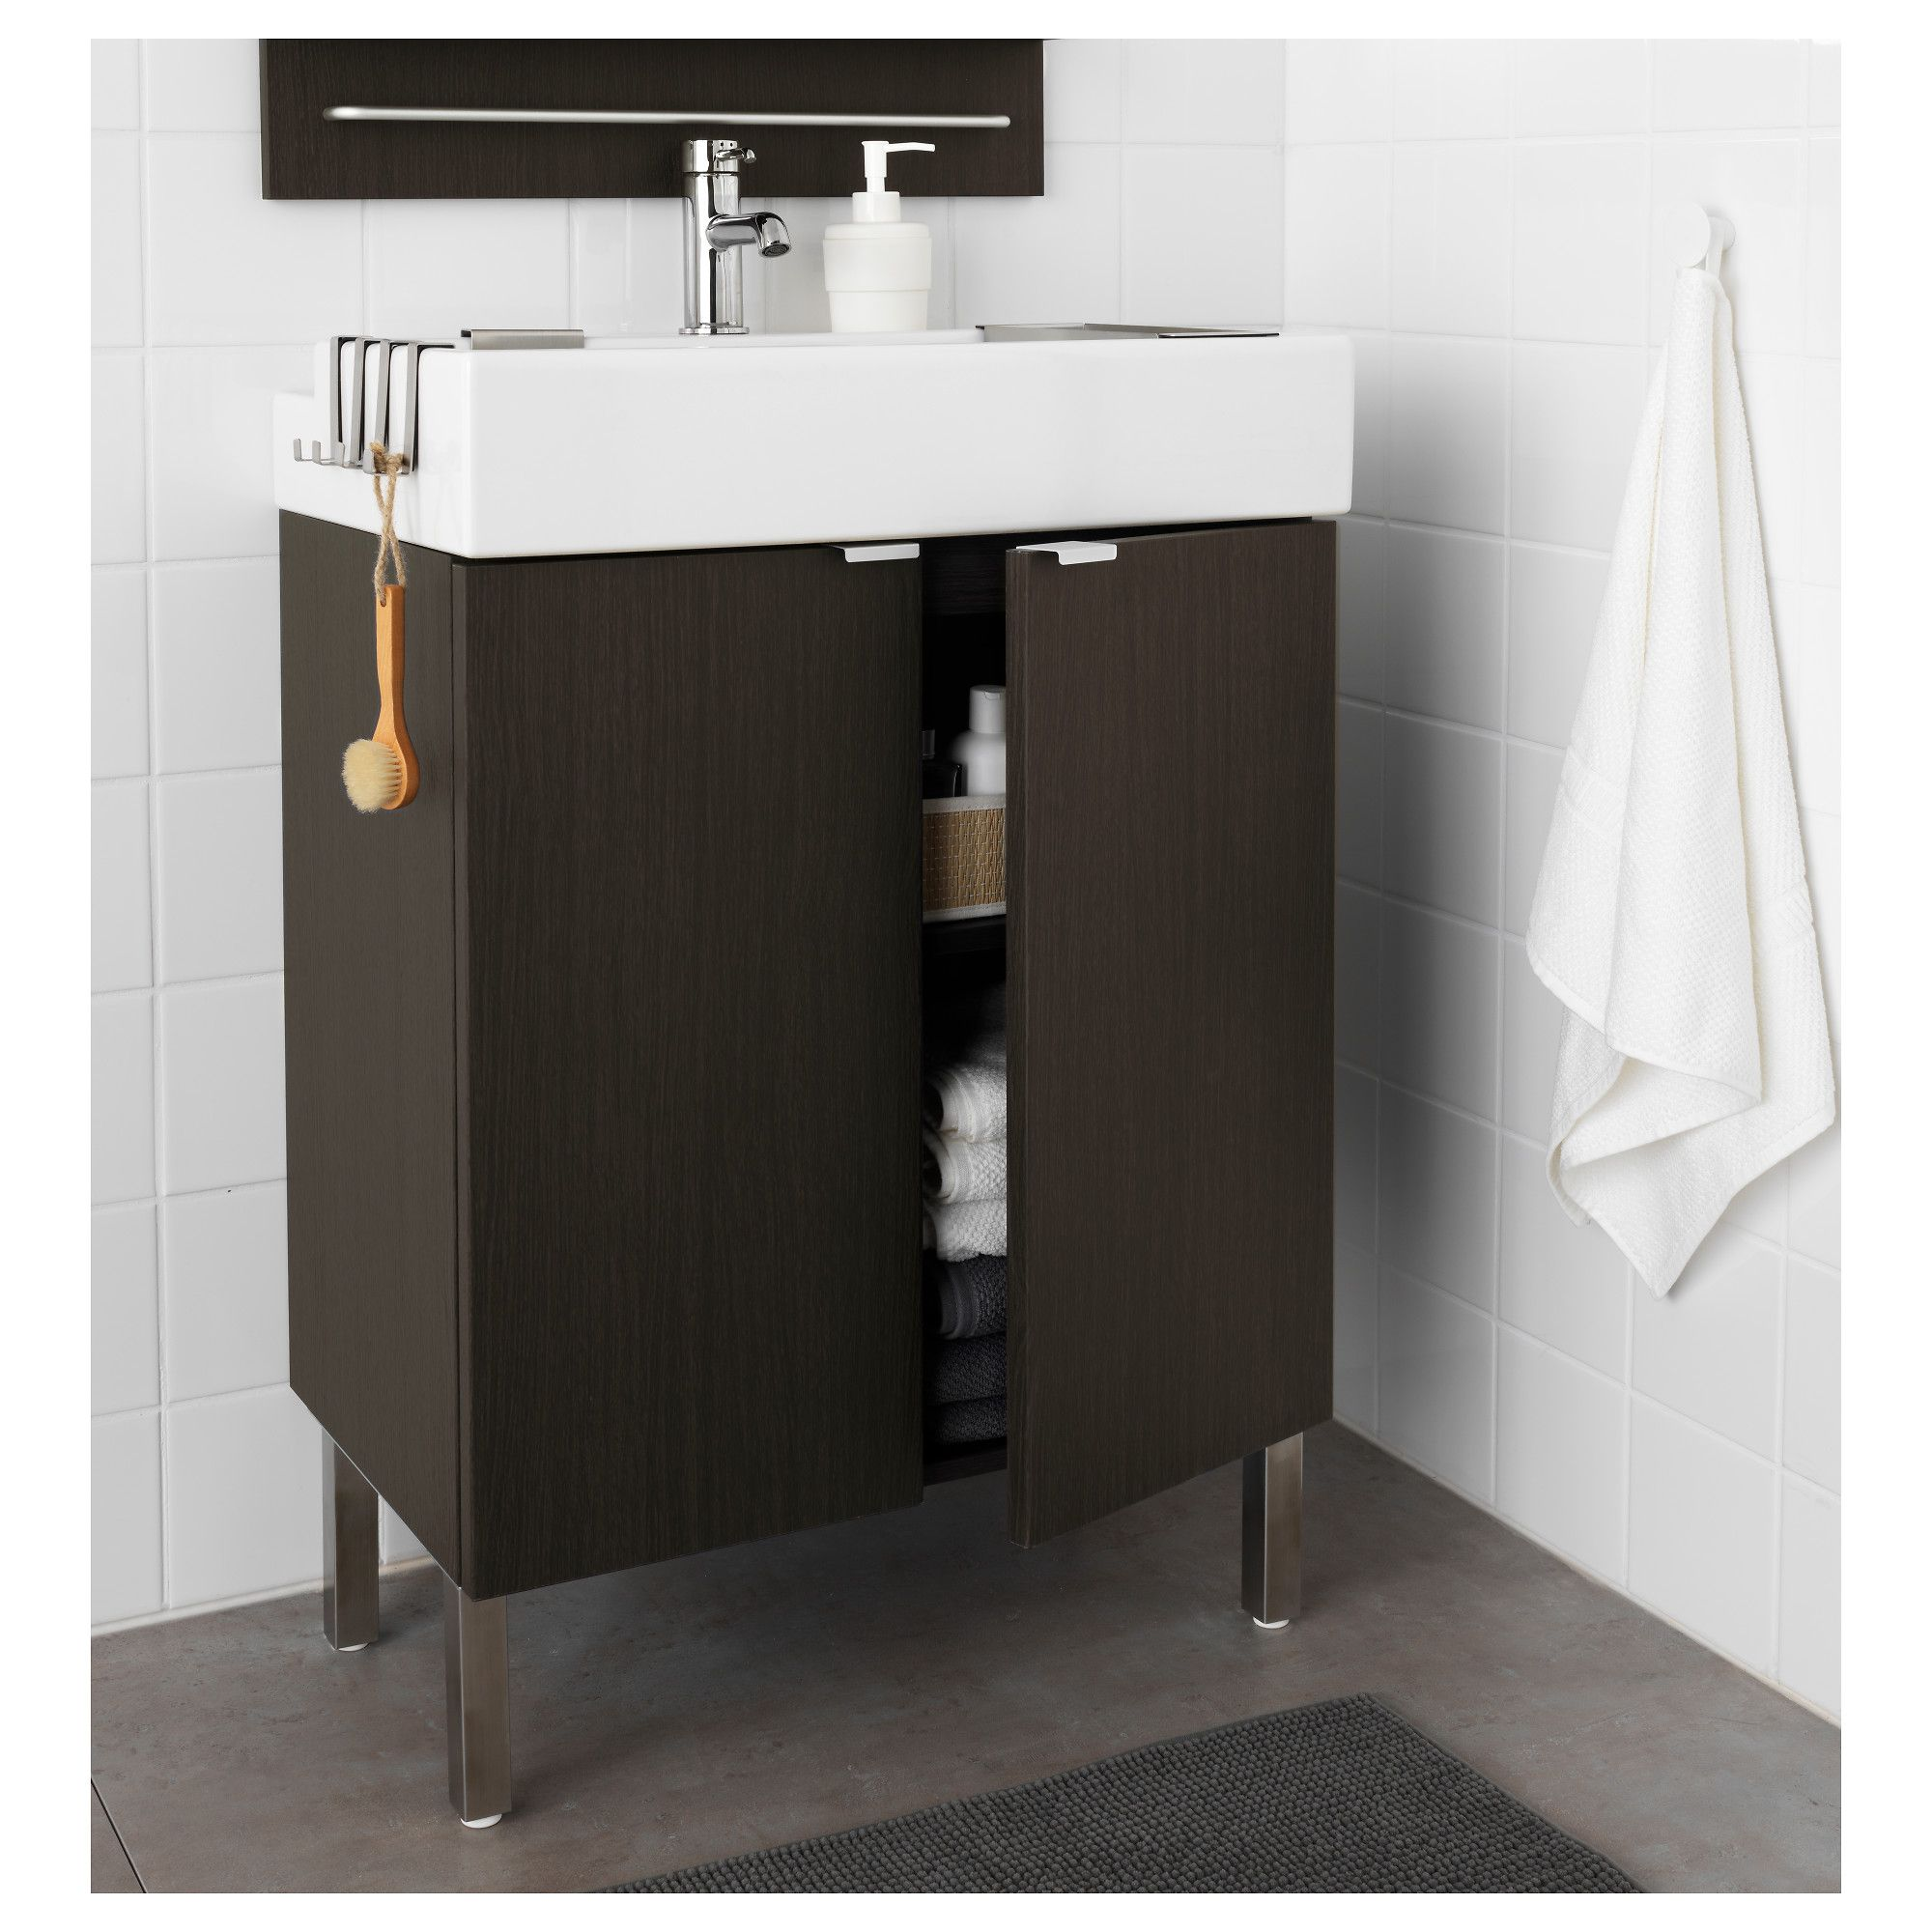 Ikea Lill Ngen Washbasin Cabinet With 2 Doors